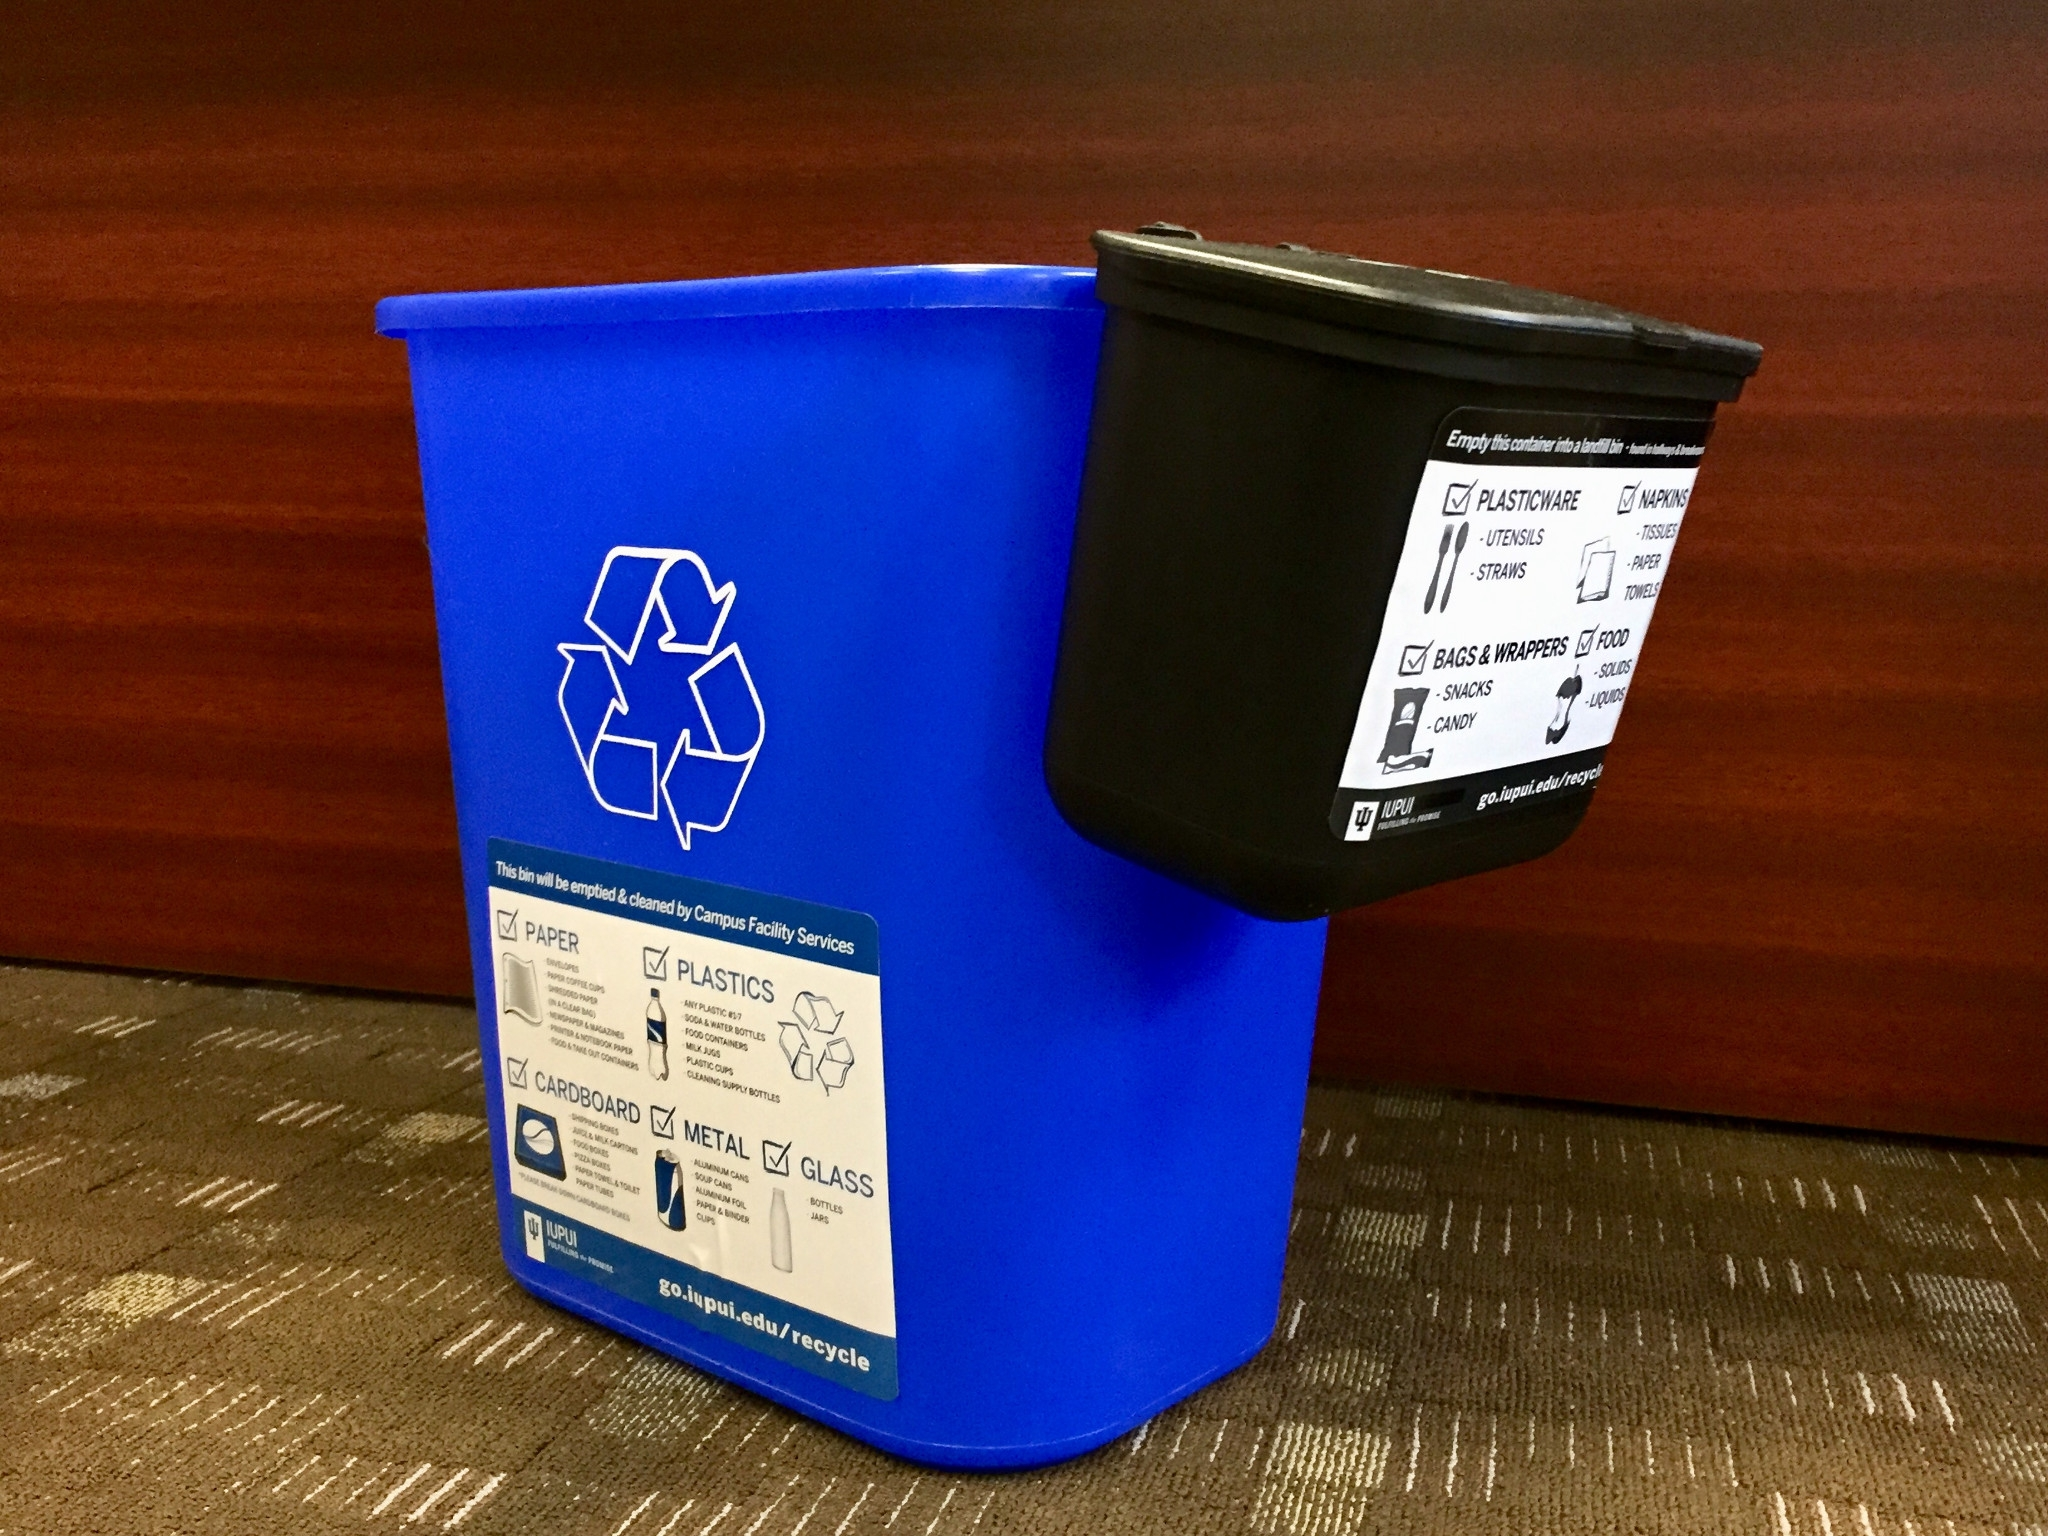 Desk-side recycling program expands: News at IU: Indiana